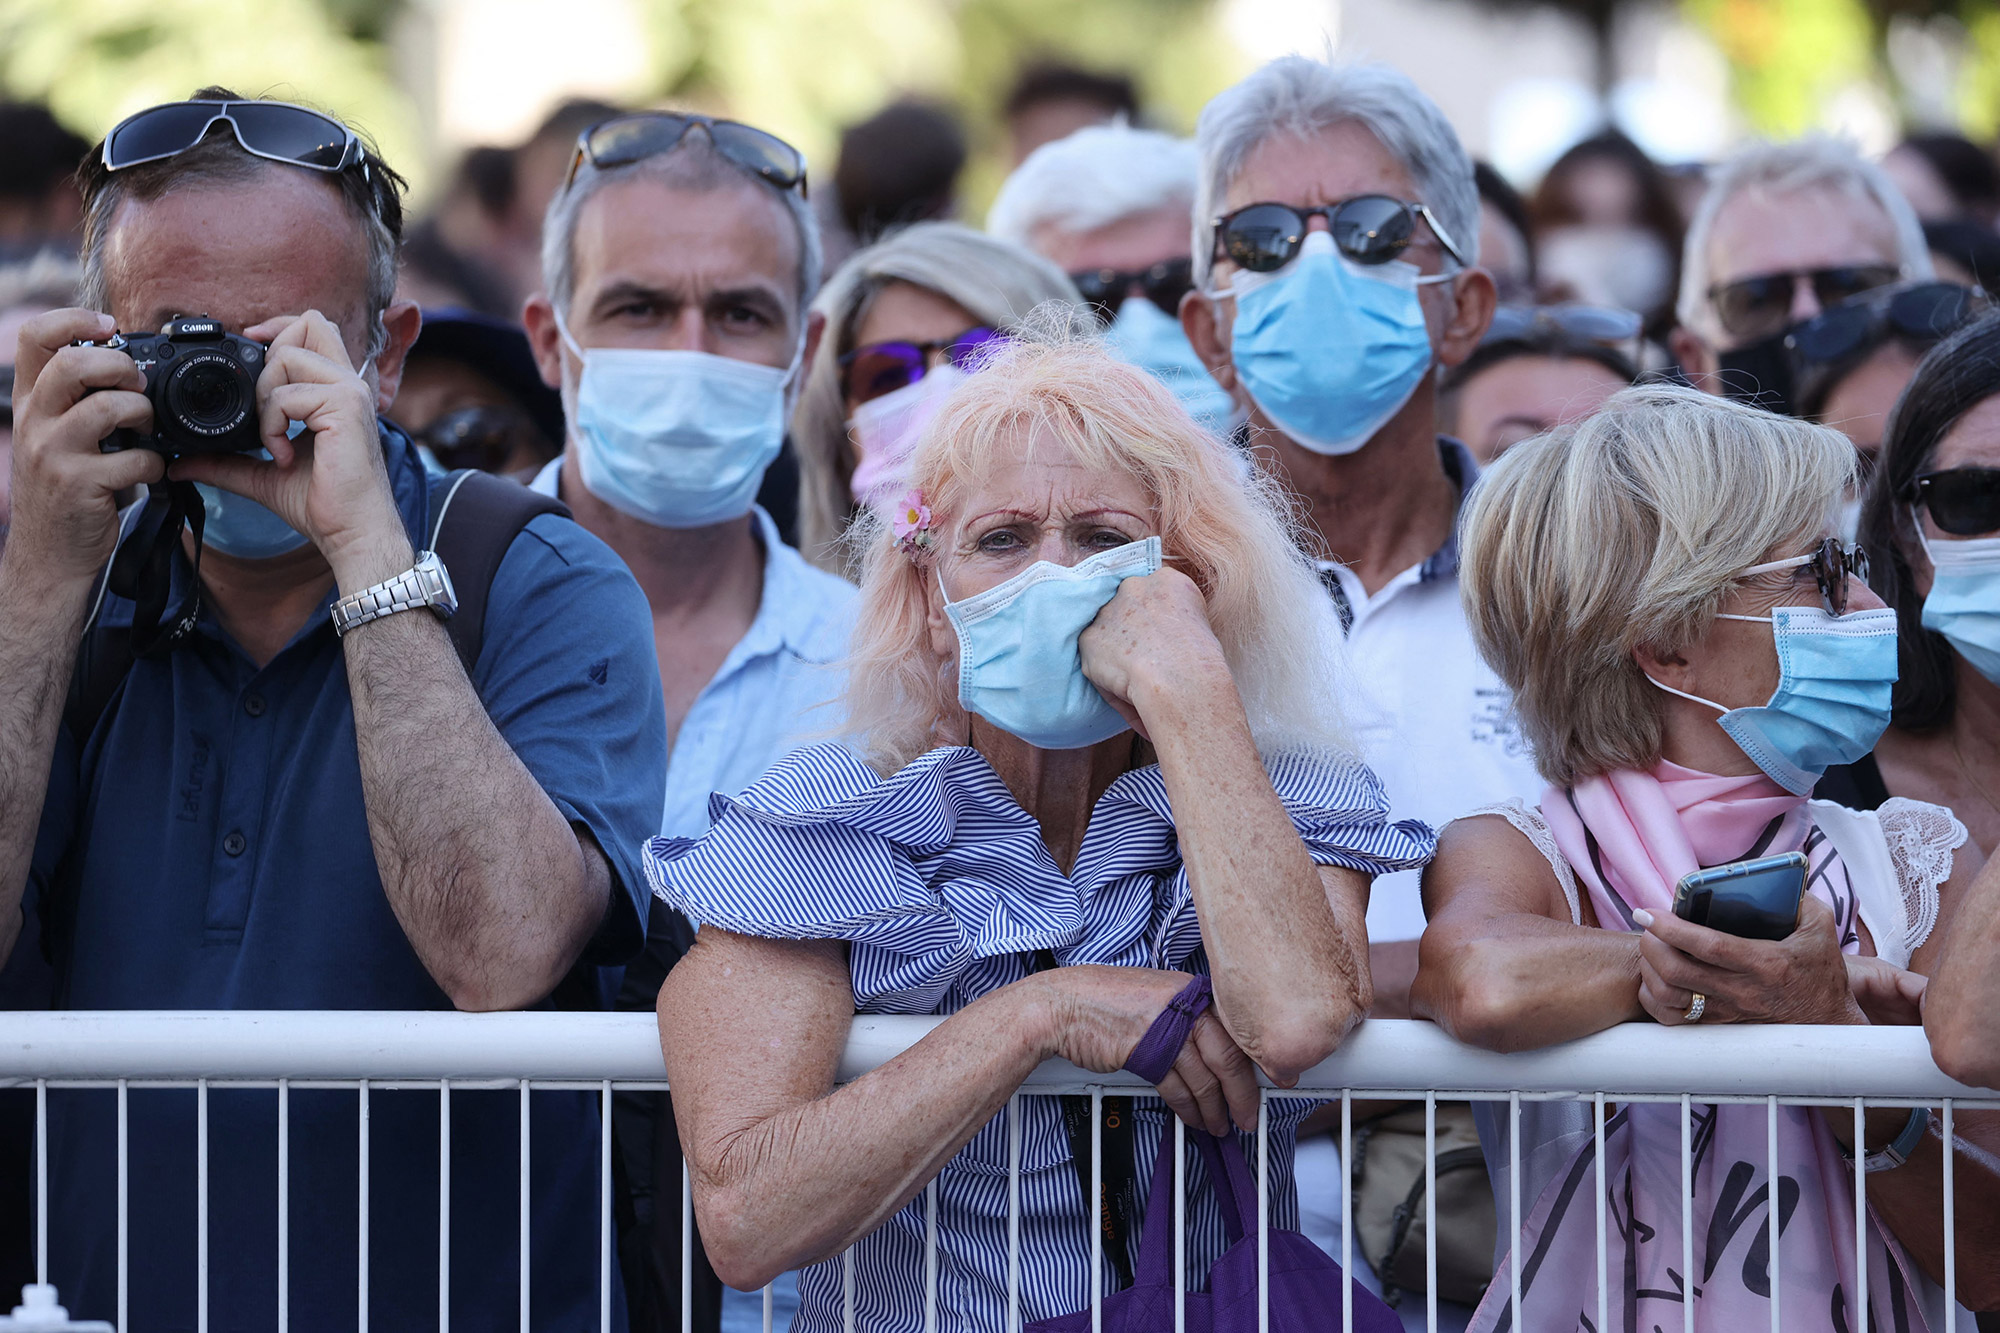 """Onlookers wearing masks for protection against the COVID-19 pandameic watch guests arriving for the screening of the film """"Benedetta"""" at the 74th edition of the Cannes Film Festival in Cannes"""